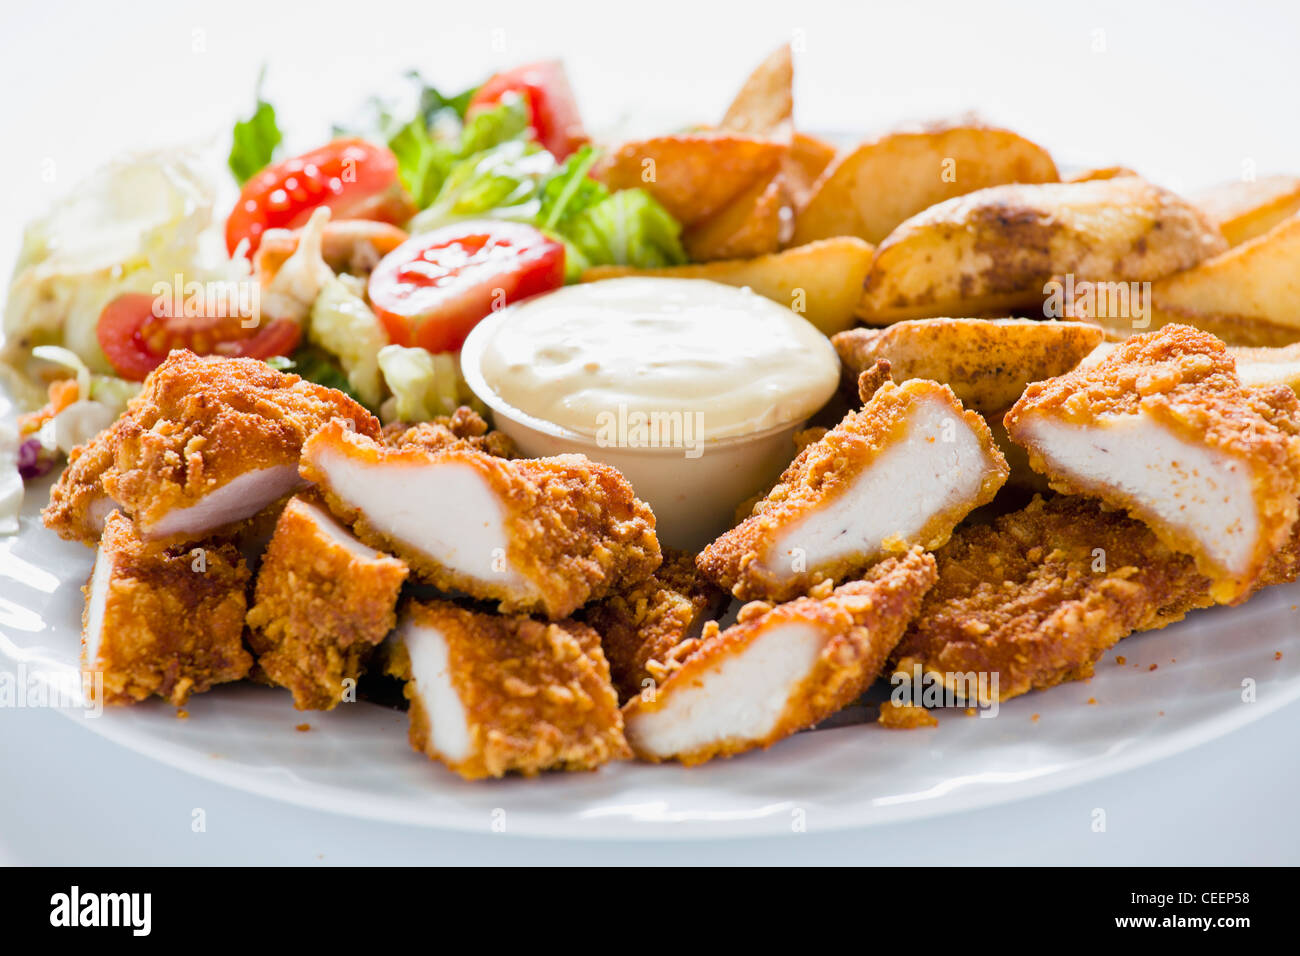 Fried Chicken Strips - Stock Image